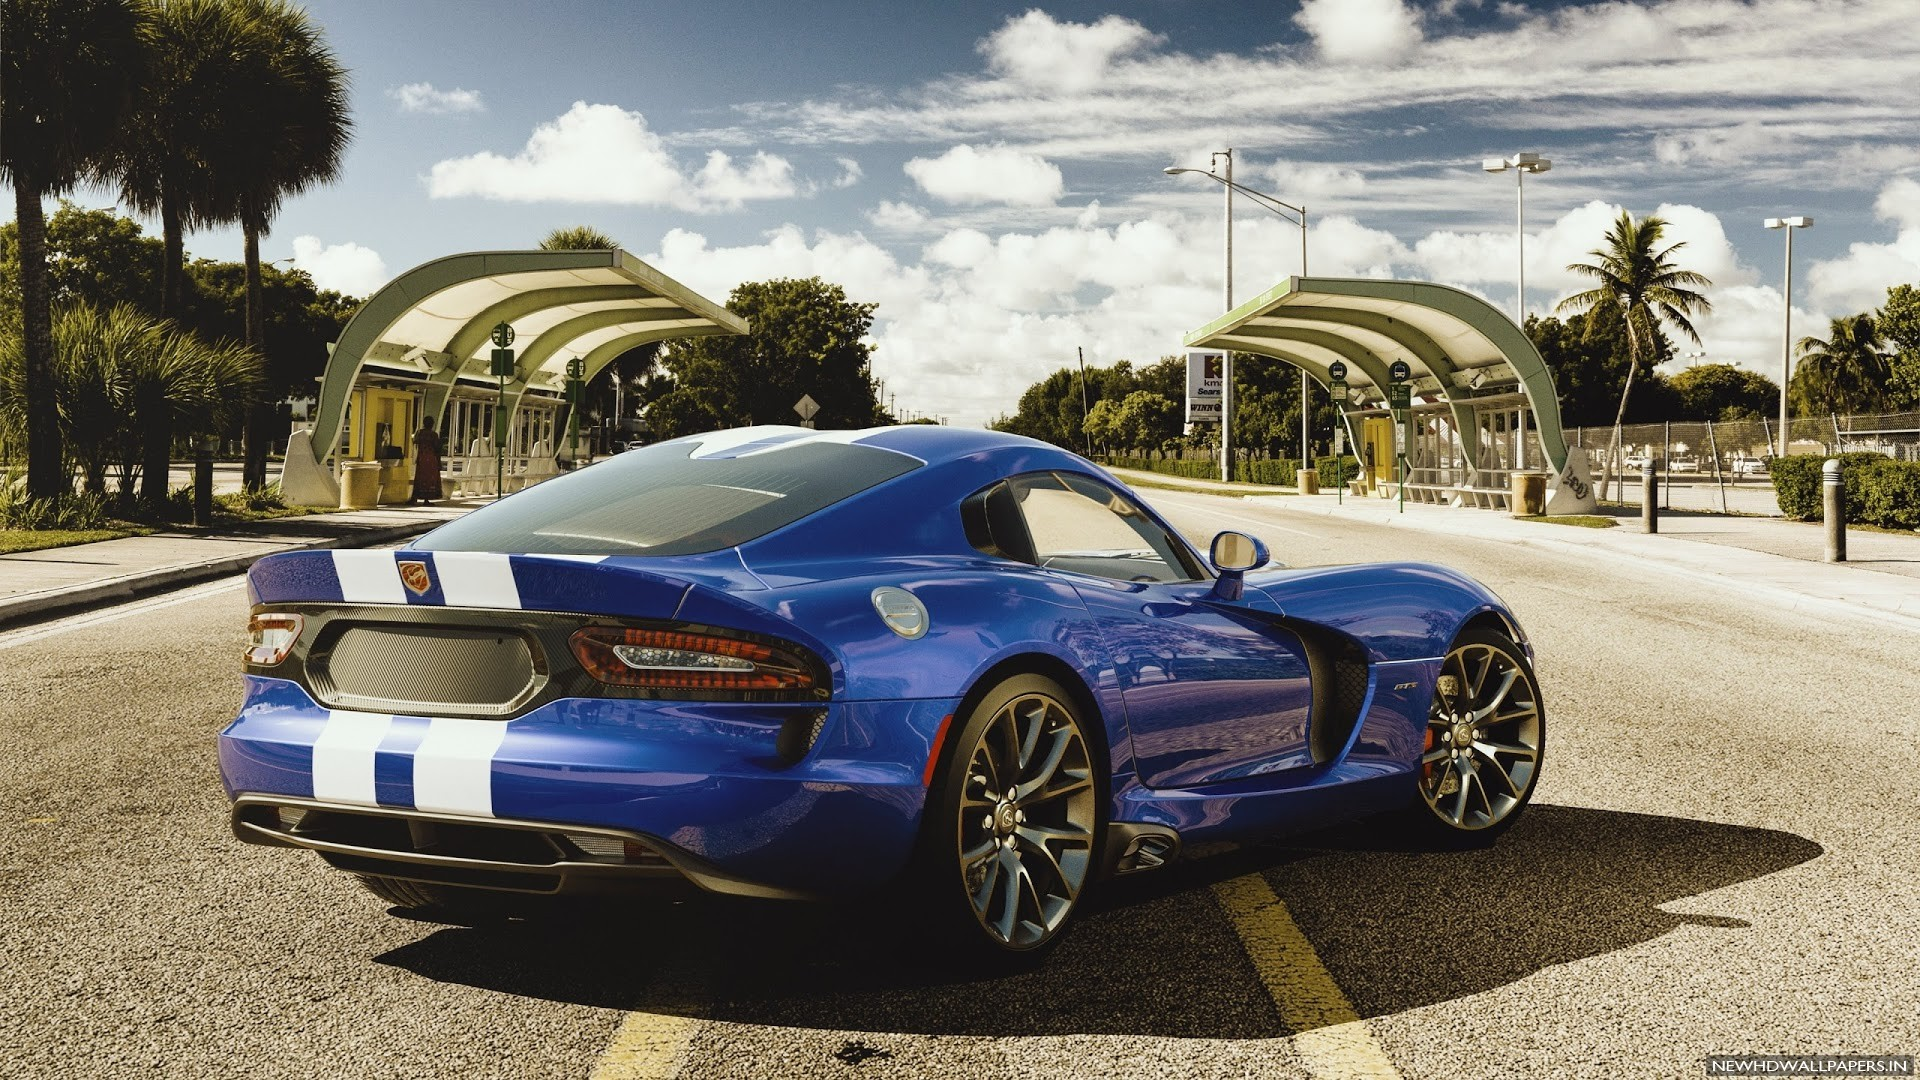 Dodge Viper GTS Blue Car Wallpaper   New HD Wallpapers 1920x1080